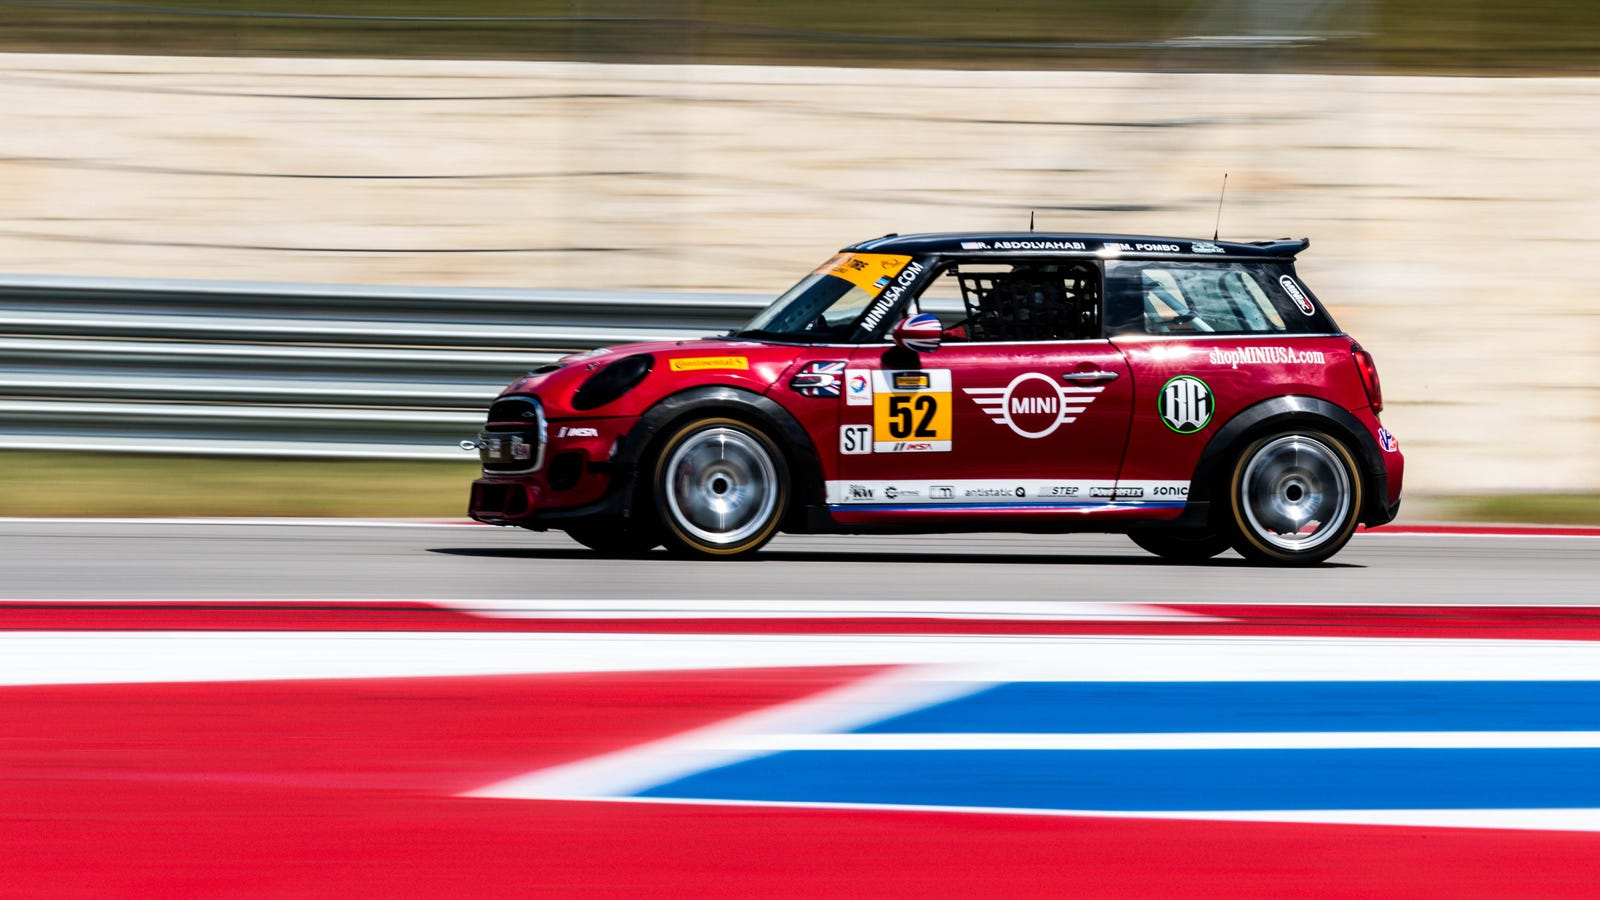 This Scrappy Little Race Team Makes Street Minis Go Faster